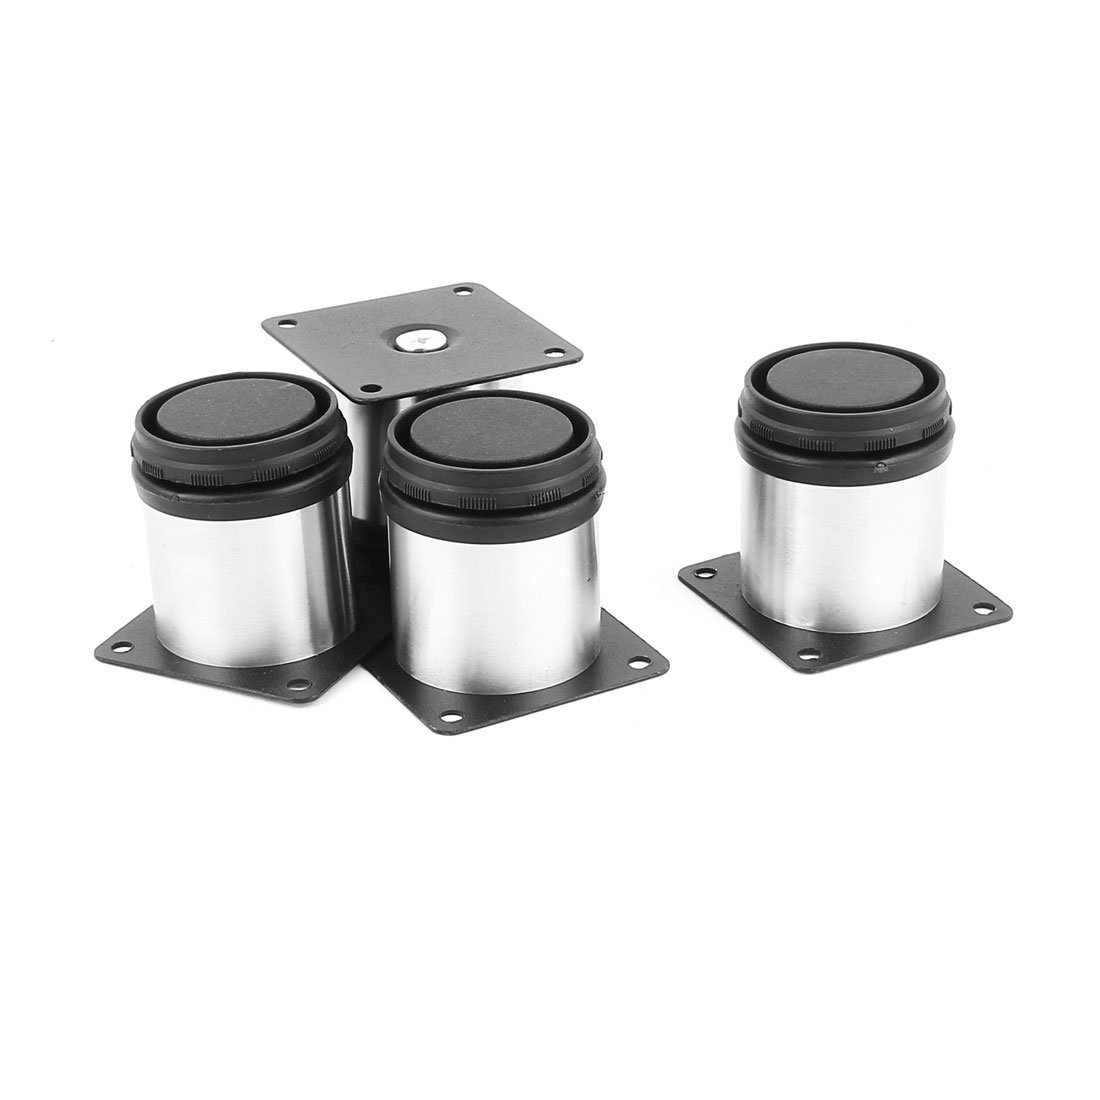 uxcell Adjustable Cabinet Legs Stand 4pcs for Tea Table Bed Shelf